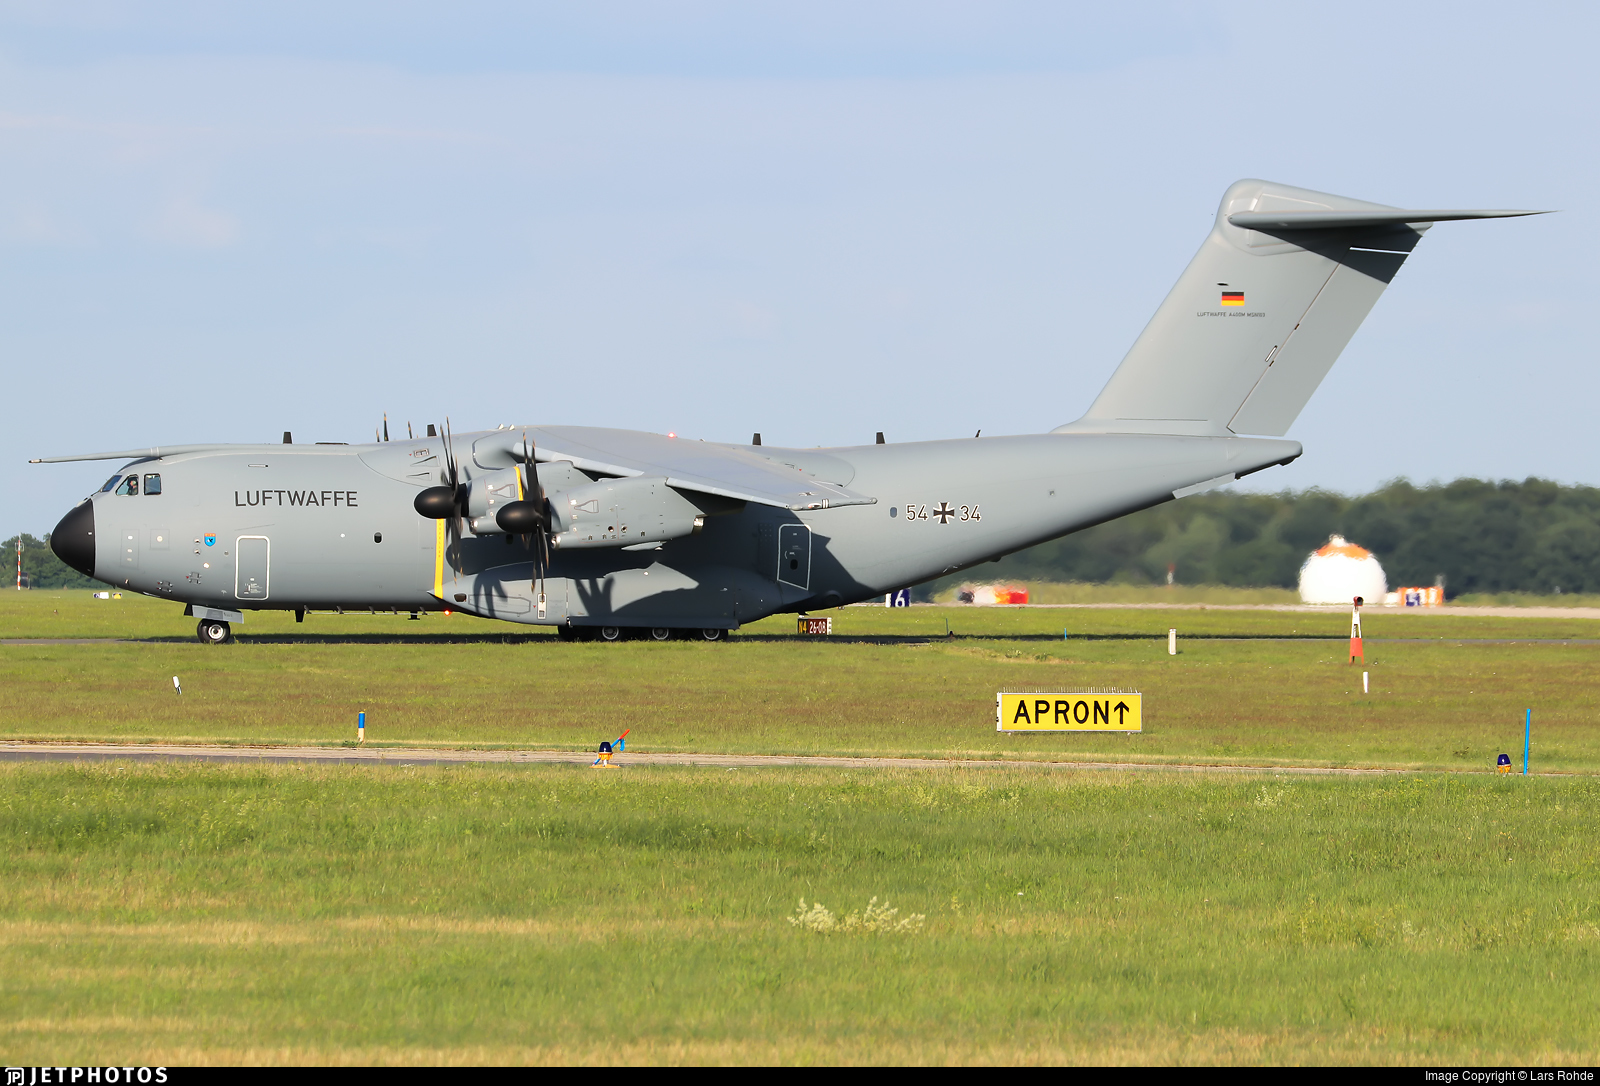 54-34 - Airbus A400M - Germany - Air Force